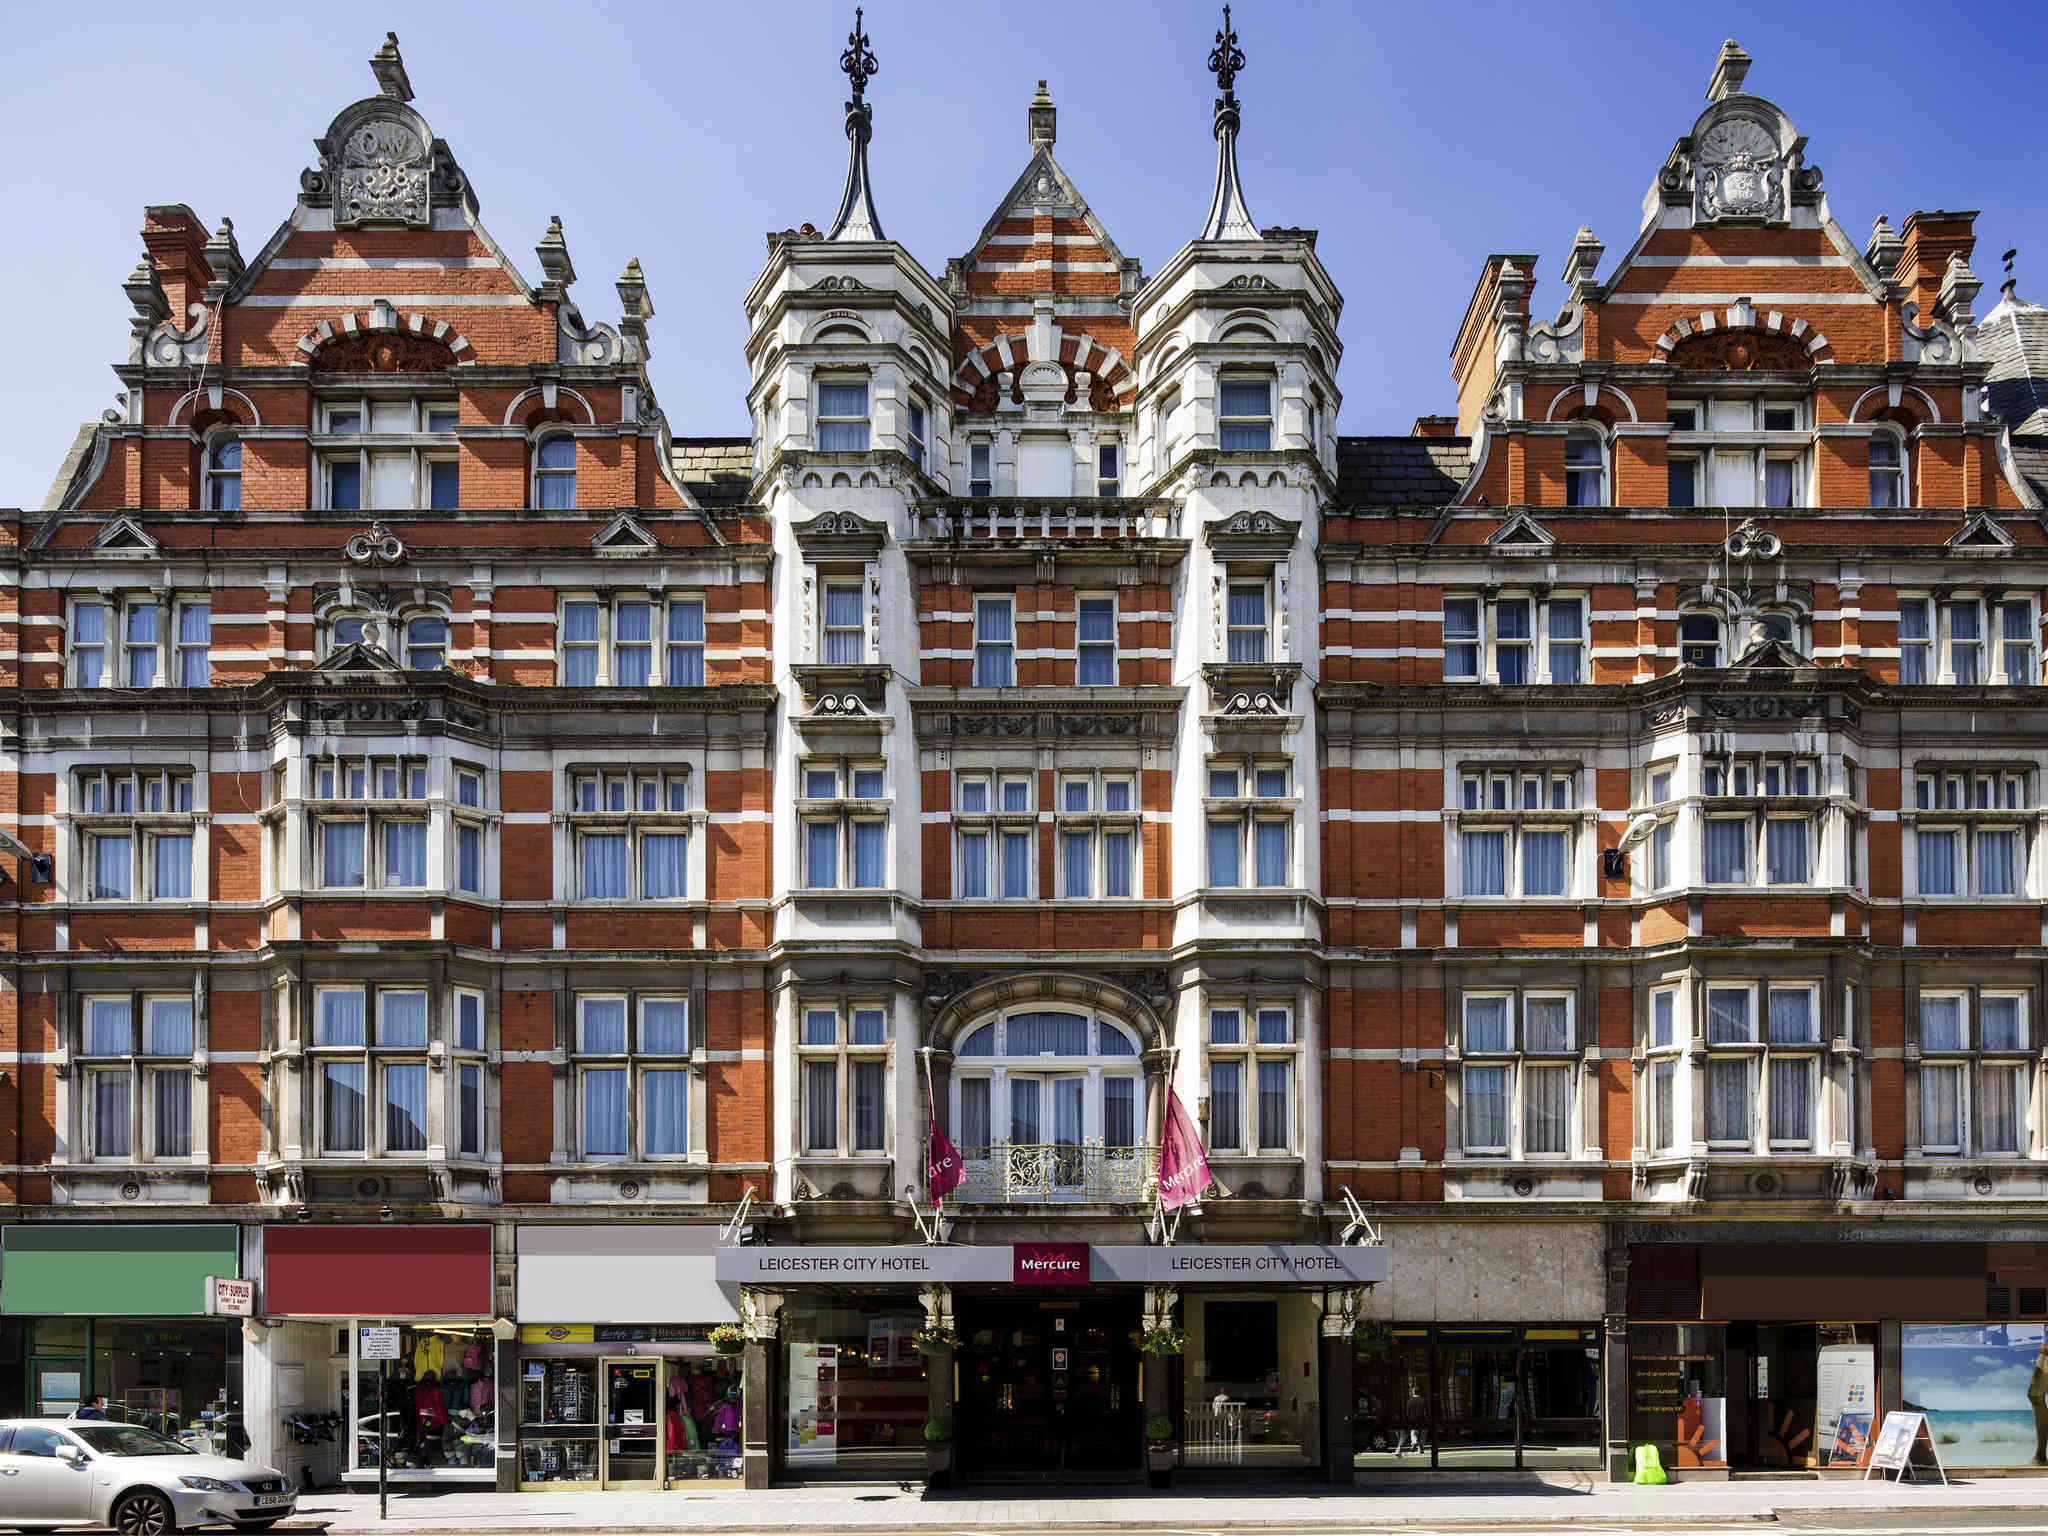 Hotell – Mercure Leicester The Grand Hotel